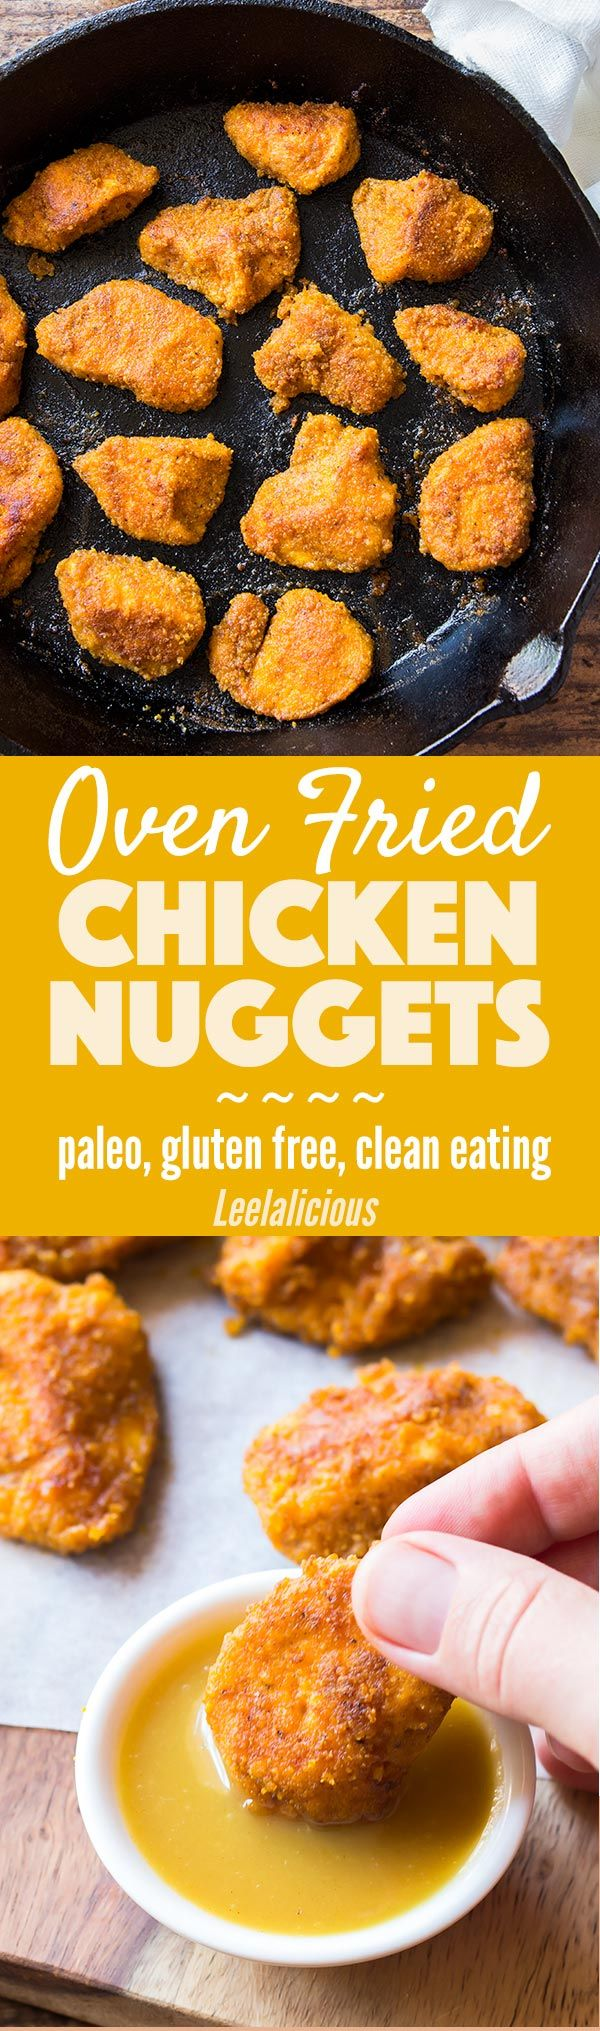 These Paleo Chicken Nuggets are oven fried and have a delicious seasoned coconut flour breading. A healthy and kid friendly version of baked chicken nuggets